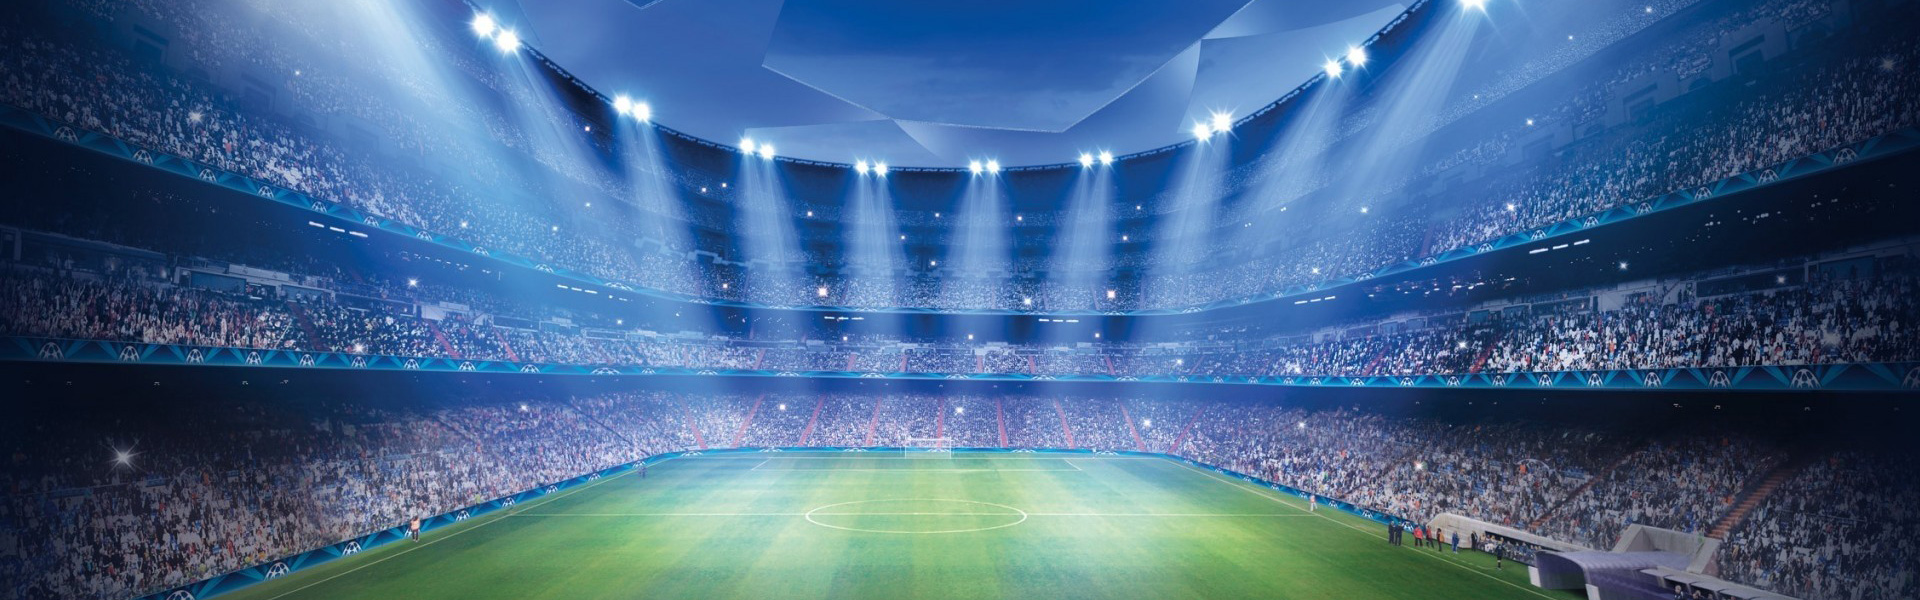 Birthday Banner Party City Stadium Background Photos, Stadium Background Vectors And